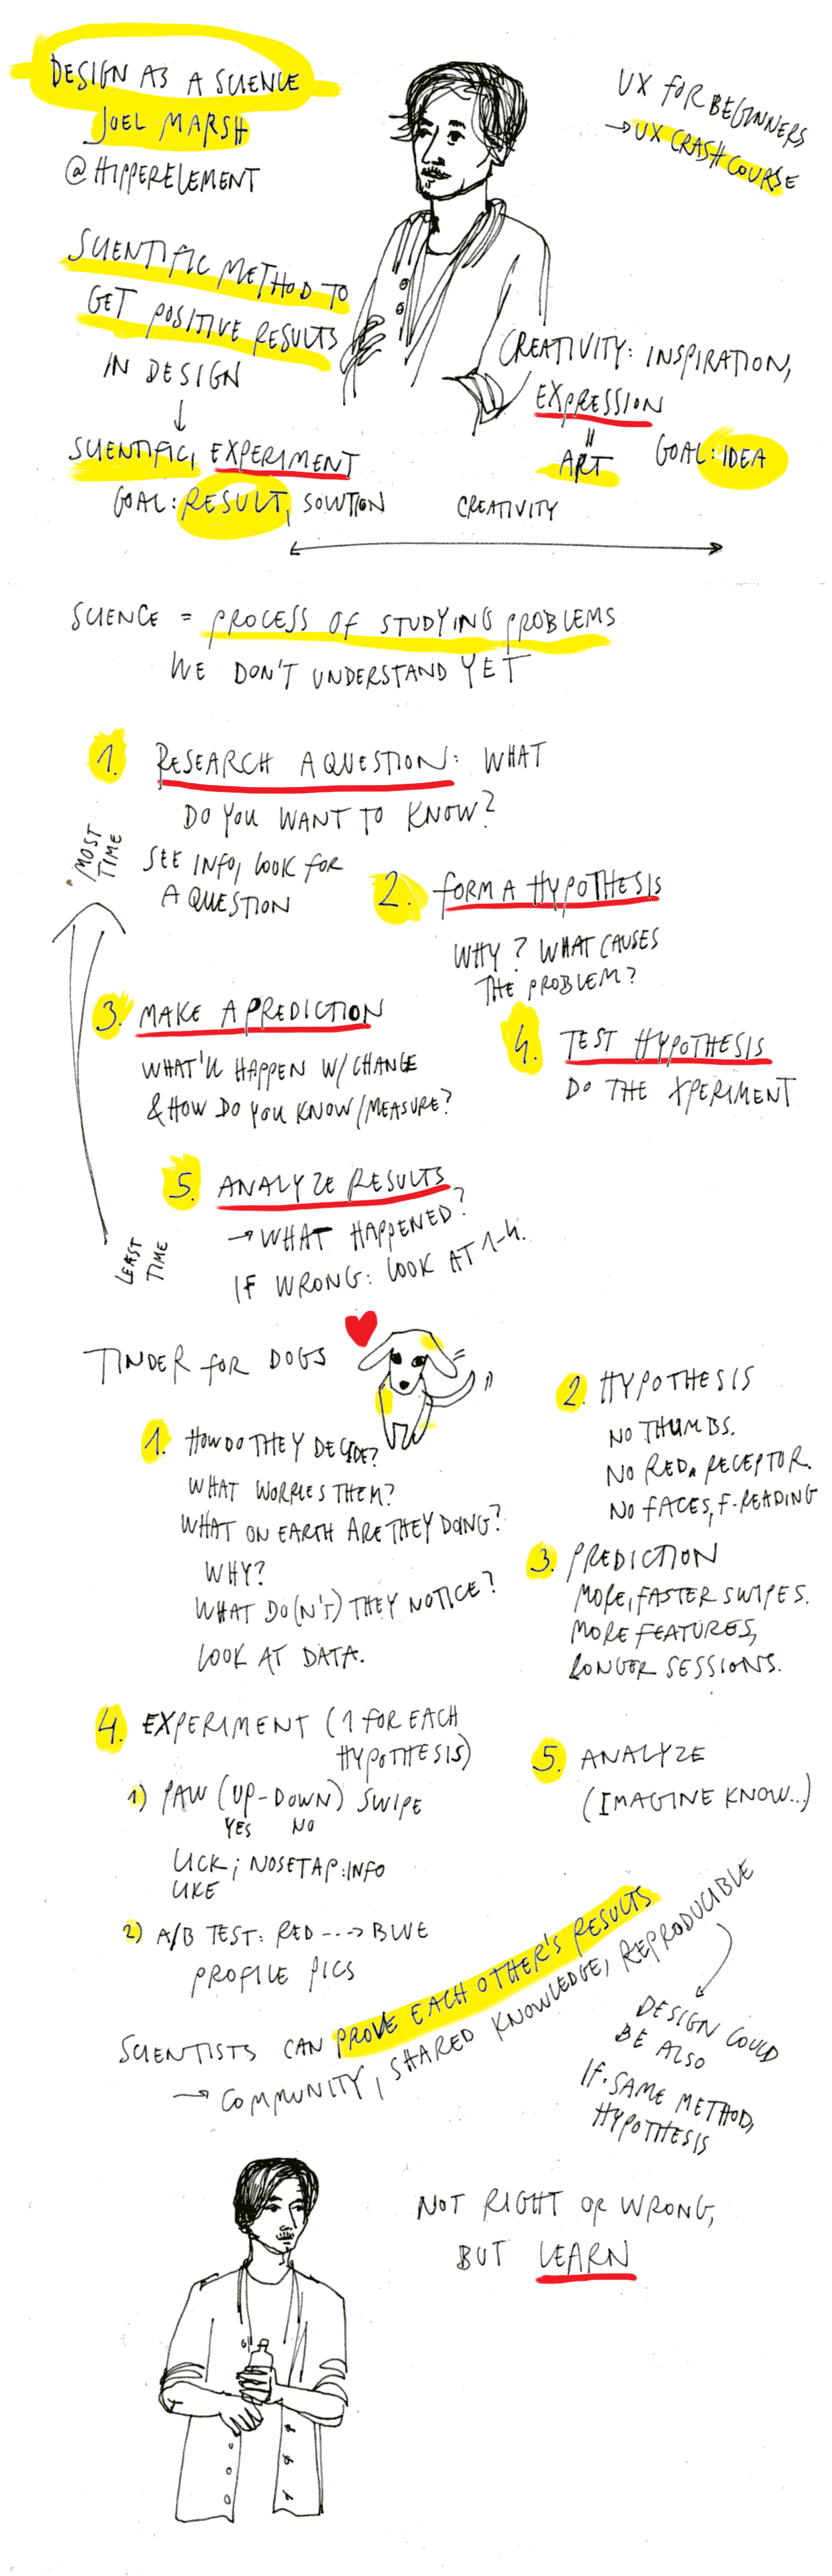 Sketchnotes of Amuse UX 2015